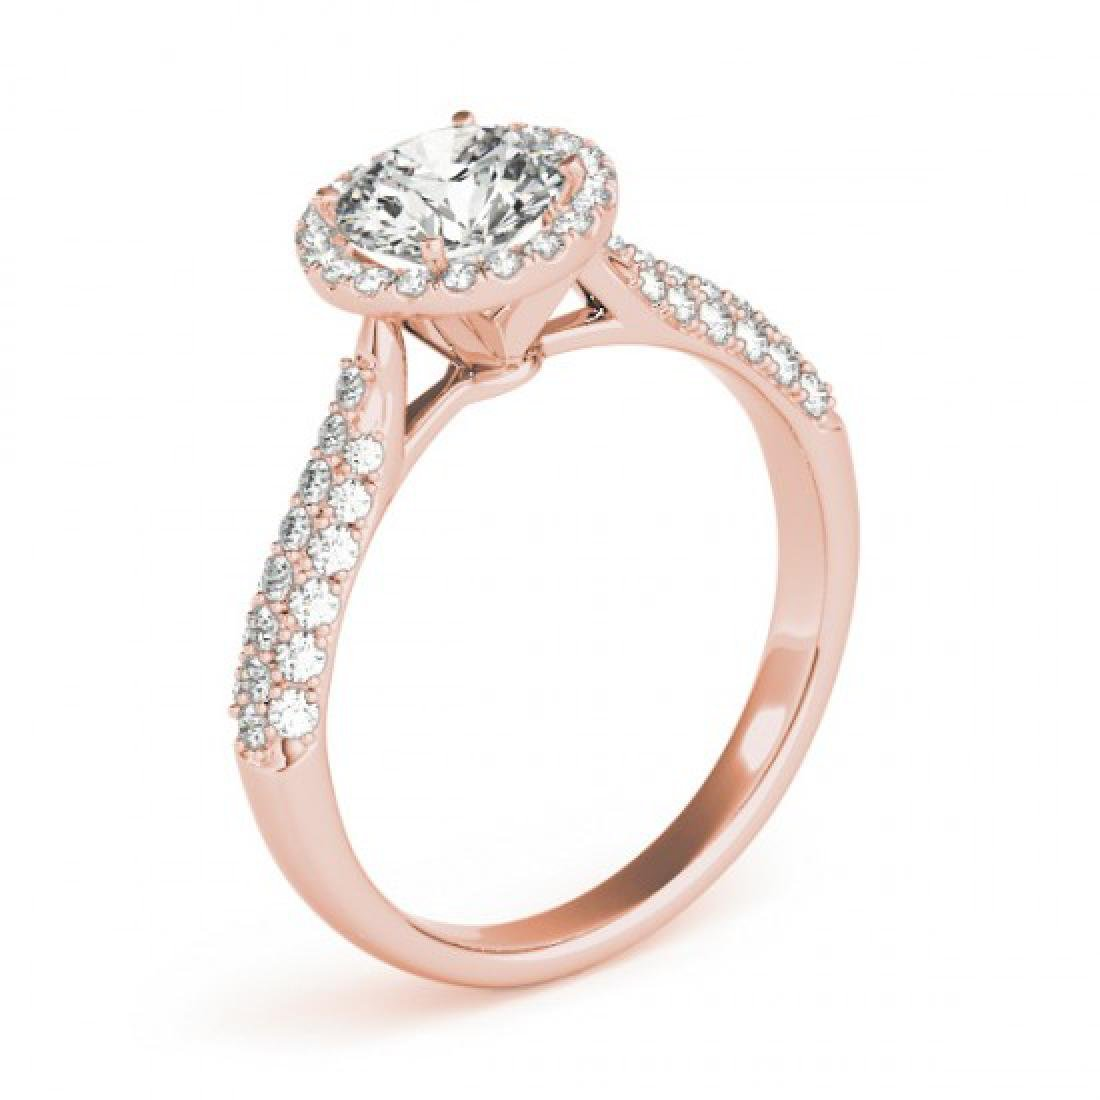 1.4 CTW Certified VS/SI Diamond Solitaire Halo Ring 14K - 3